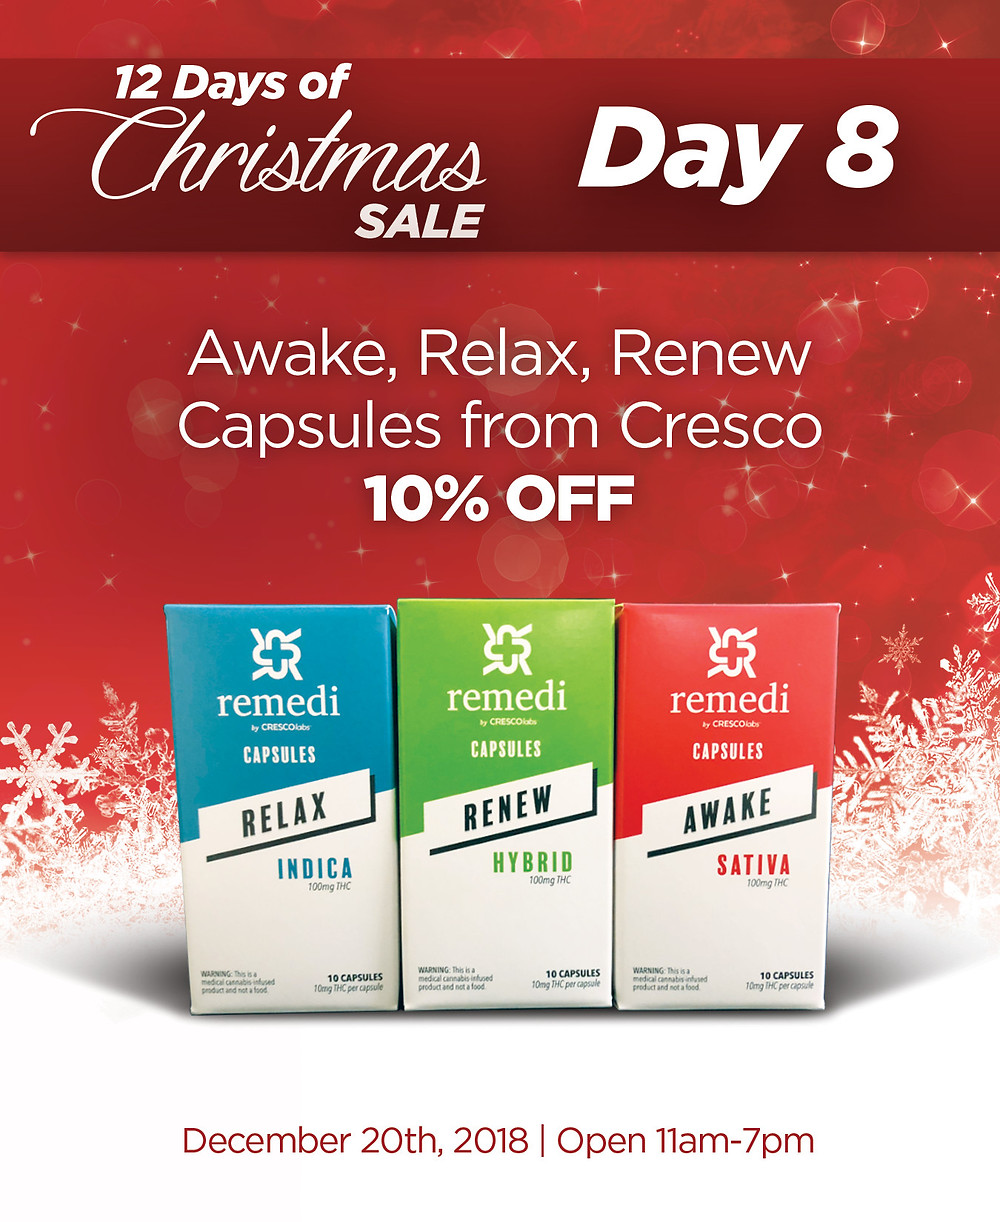 Awake, Relax, and Renew Capsules from Cresco are 10% OFF!